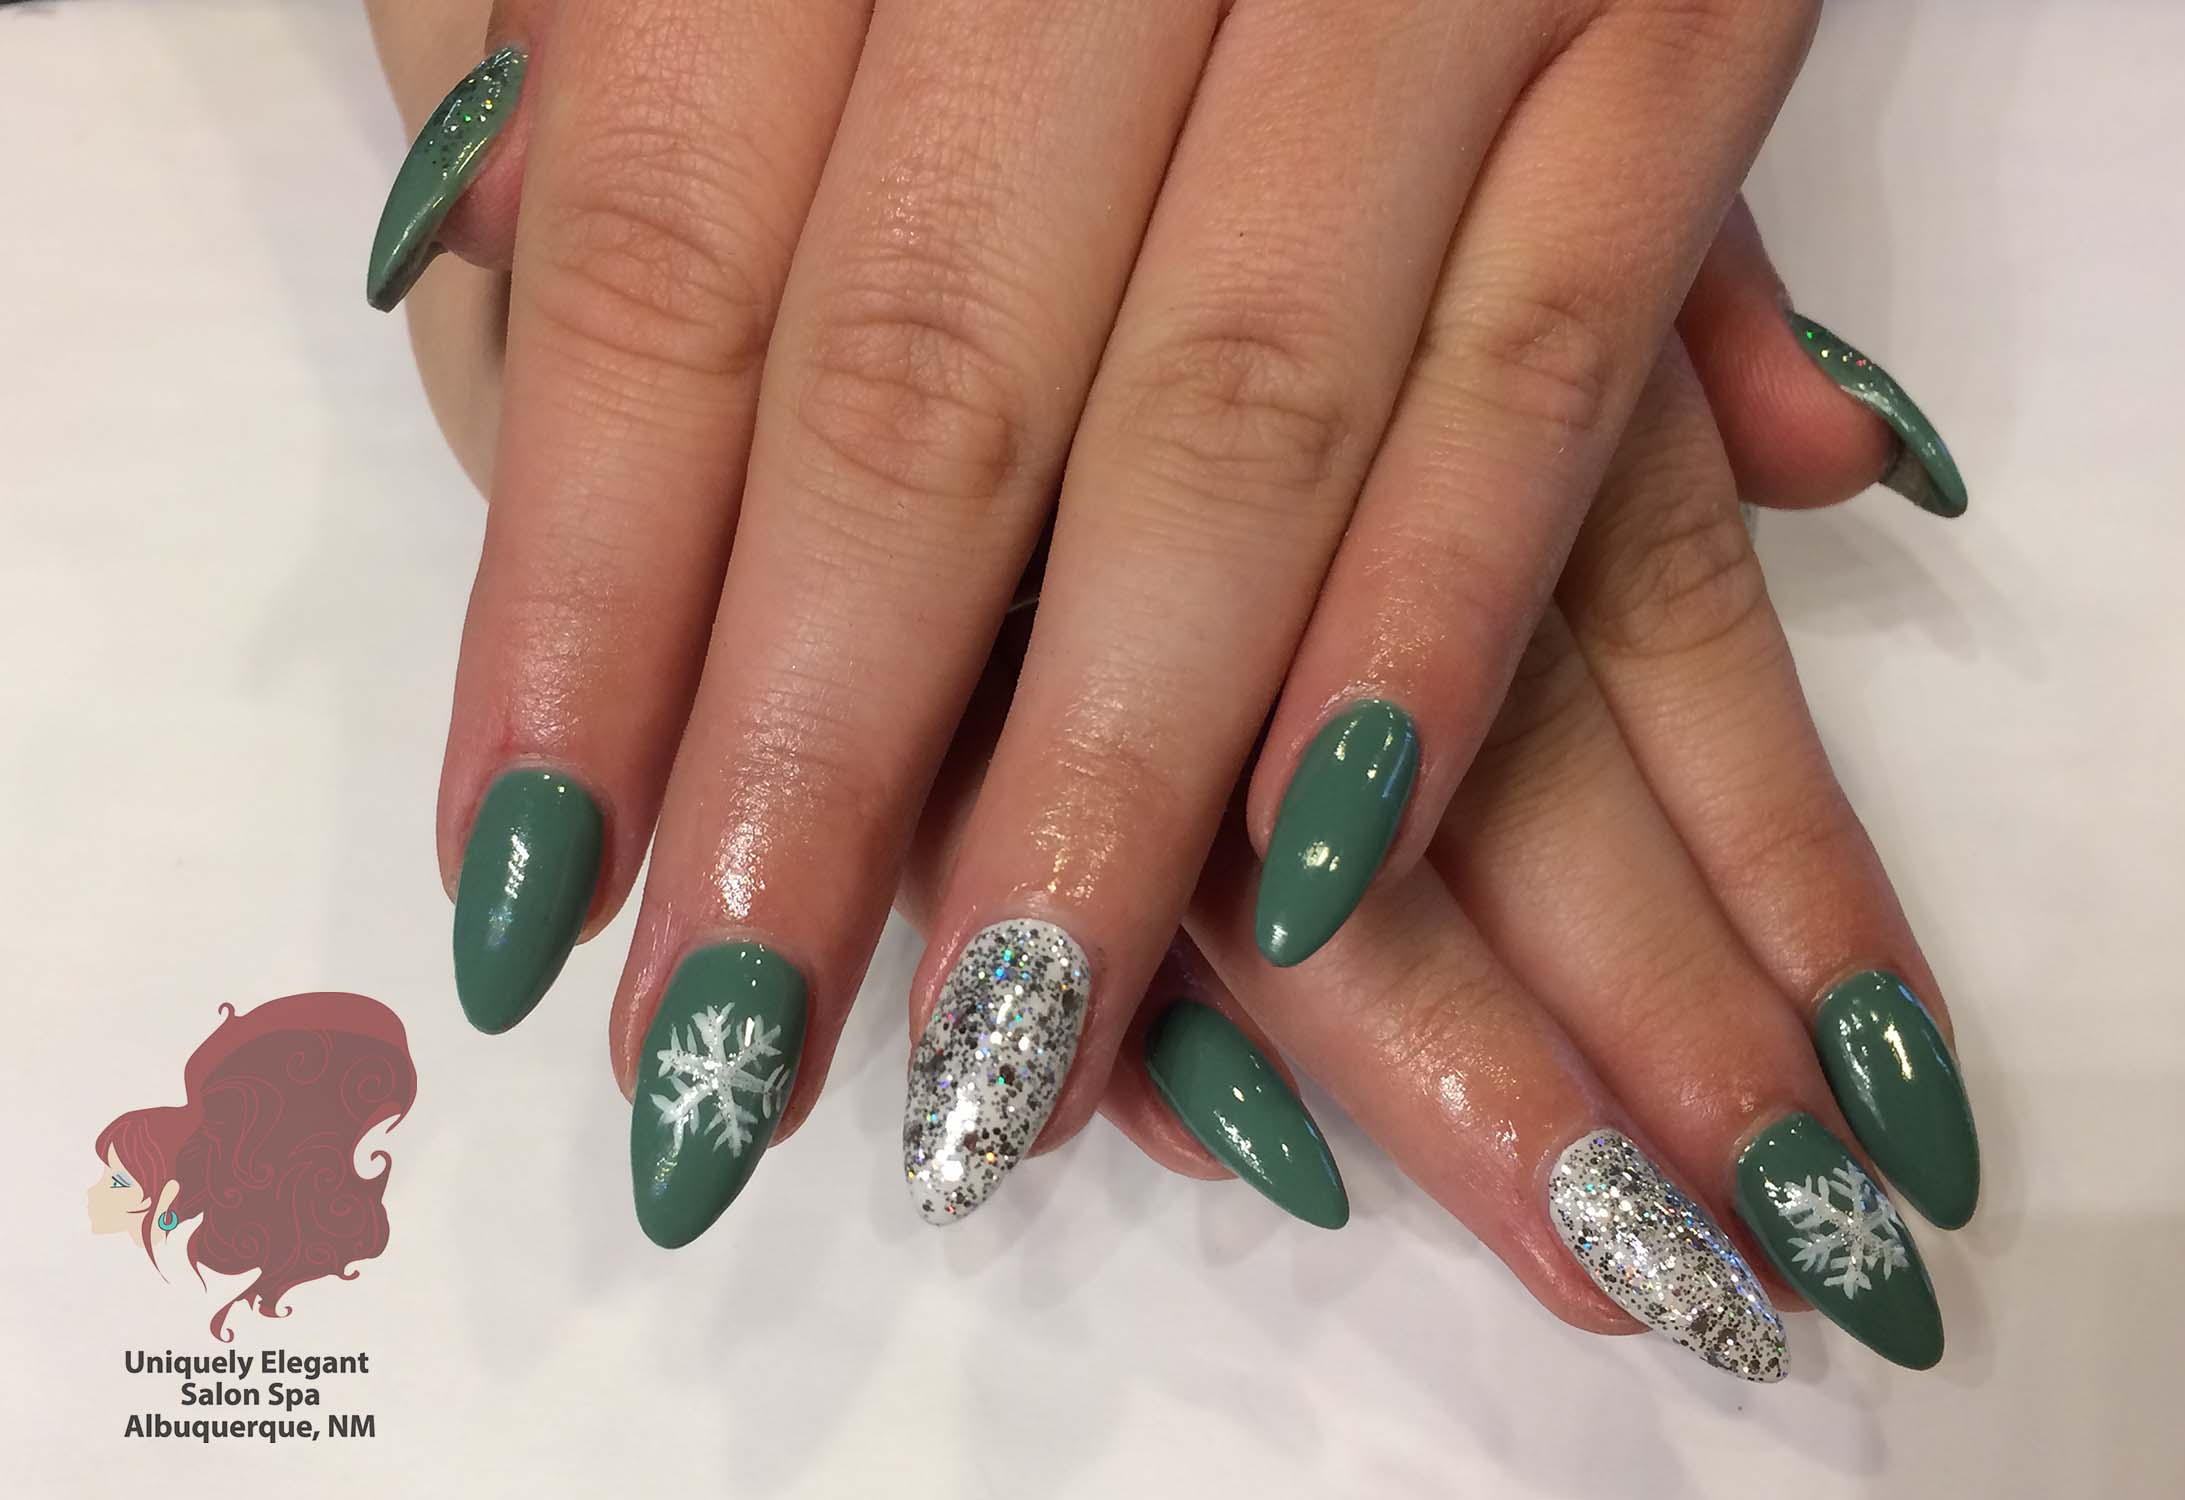 Images Tagged Winter Nail Art Abq Uniquely Elegant Salon Spa